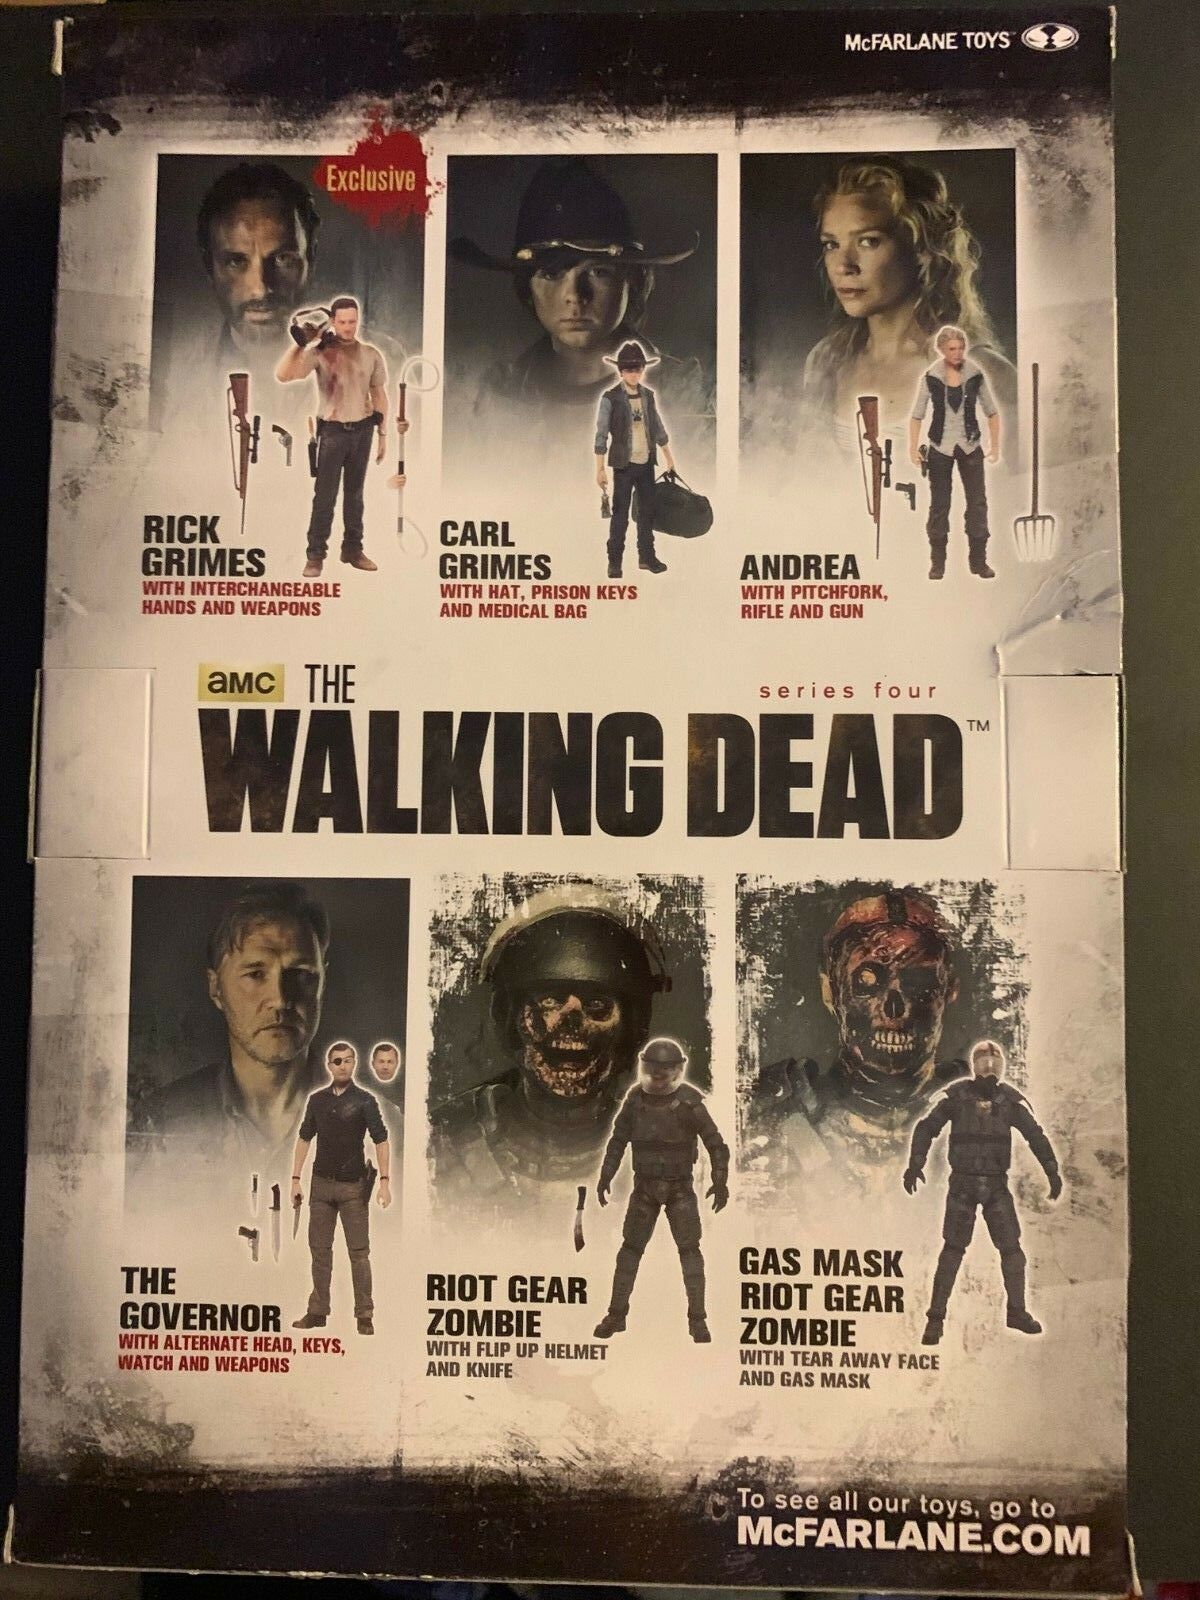 The Walre Dead Daryl e Merle Dixon noruomo reedus signed signed signed cifra 62d30a